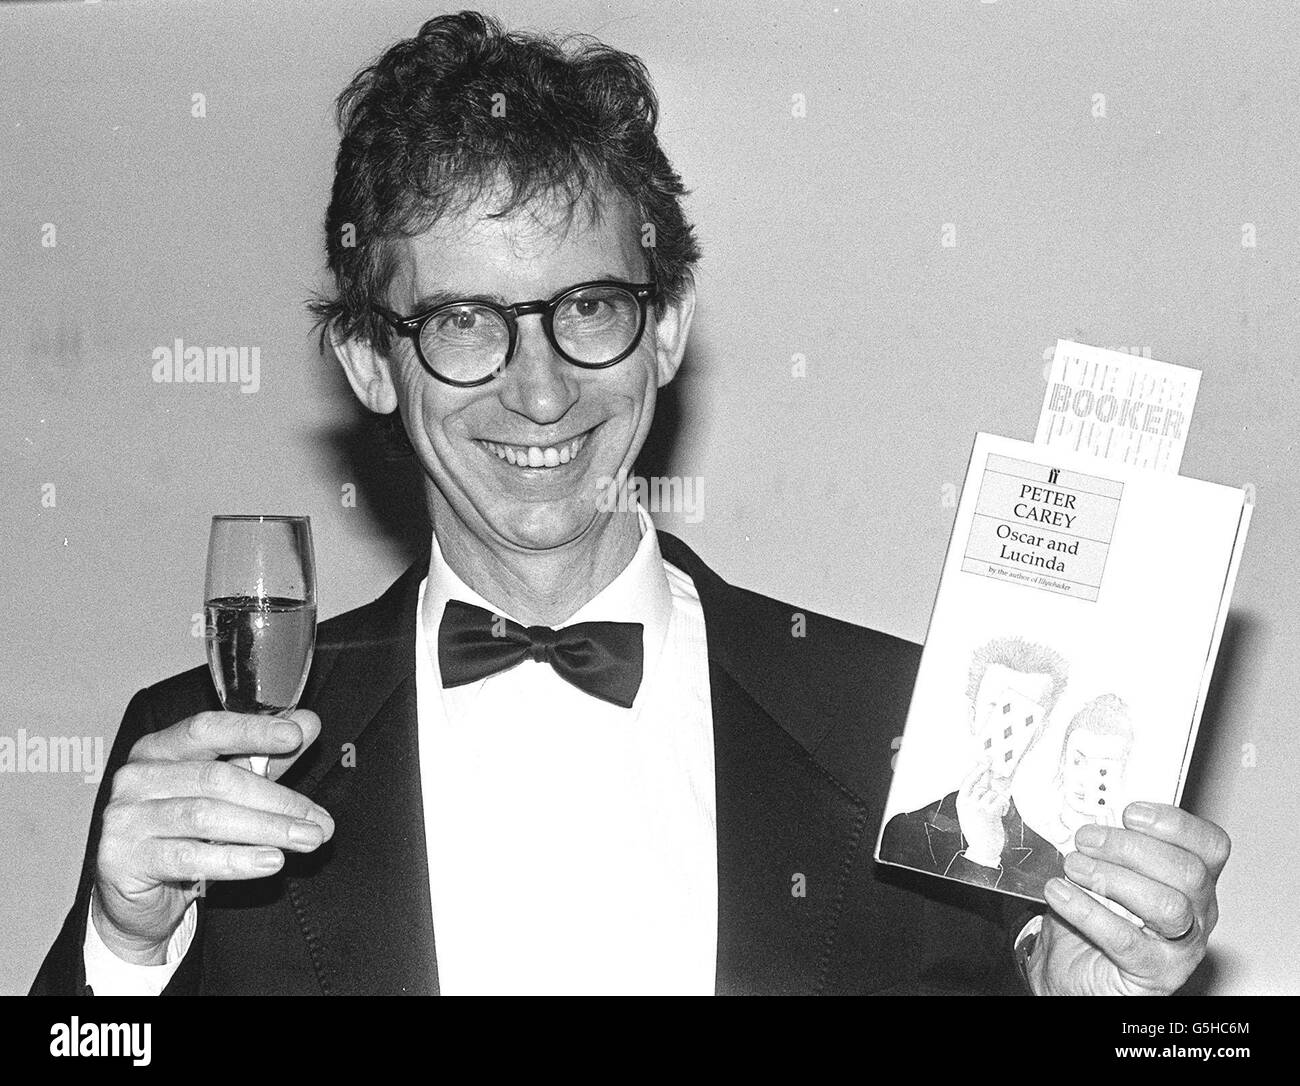 Peter Carey 1988 Booker Prize - Stock Image